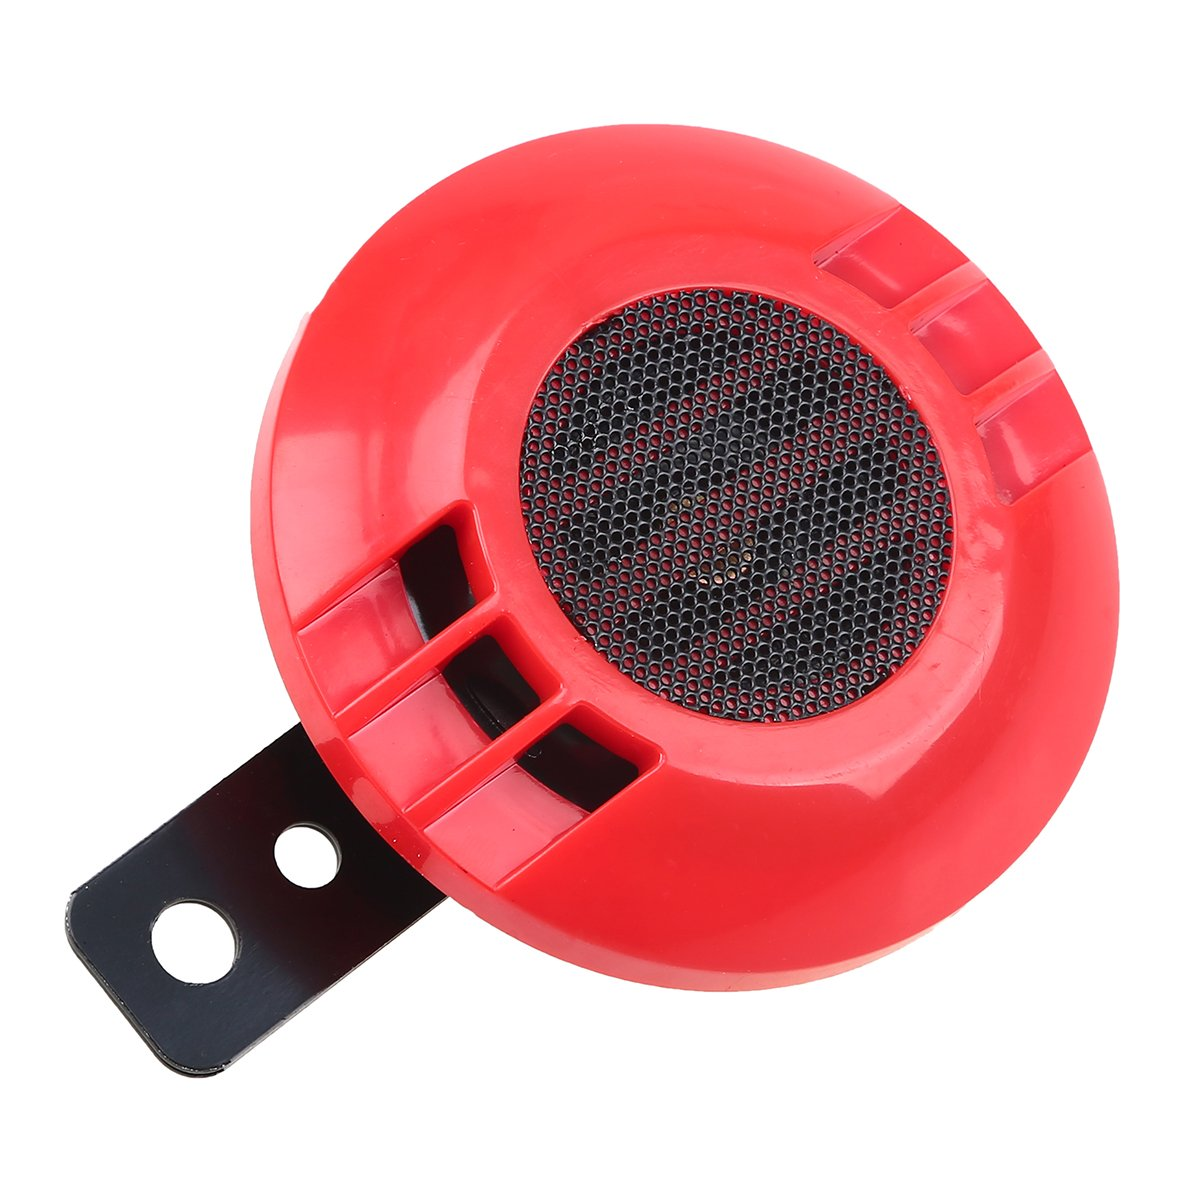 POSSBAY 12V Electric Horn 110db 430Hz Speaker Waterproof Universal for Motorcycle Car Bike Boat